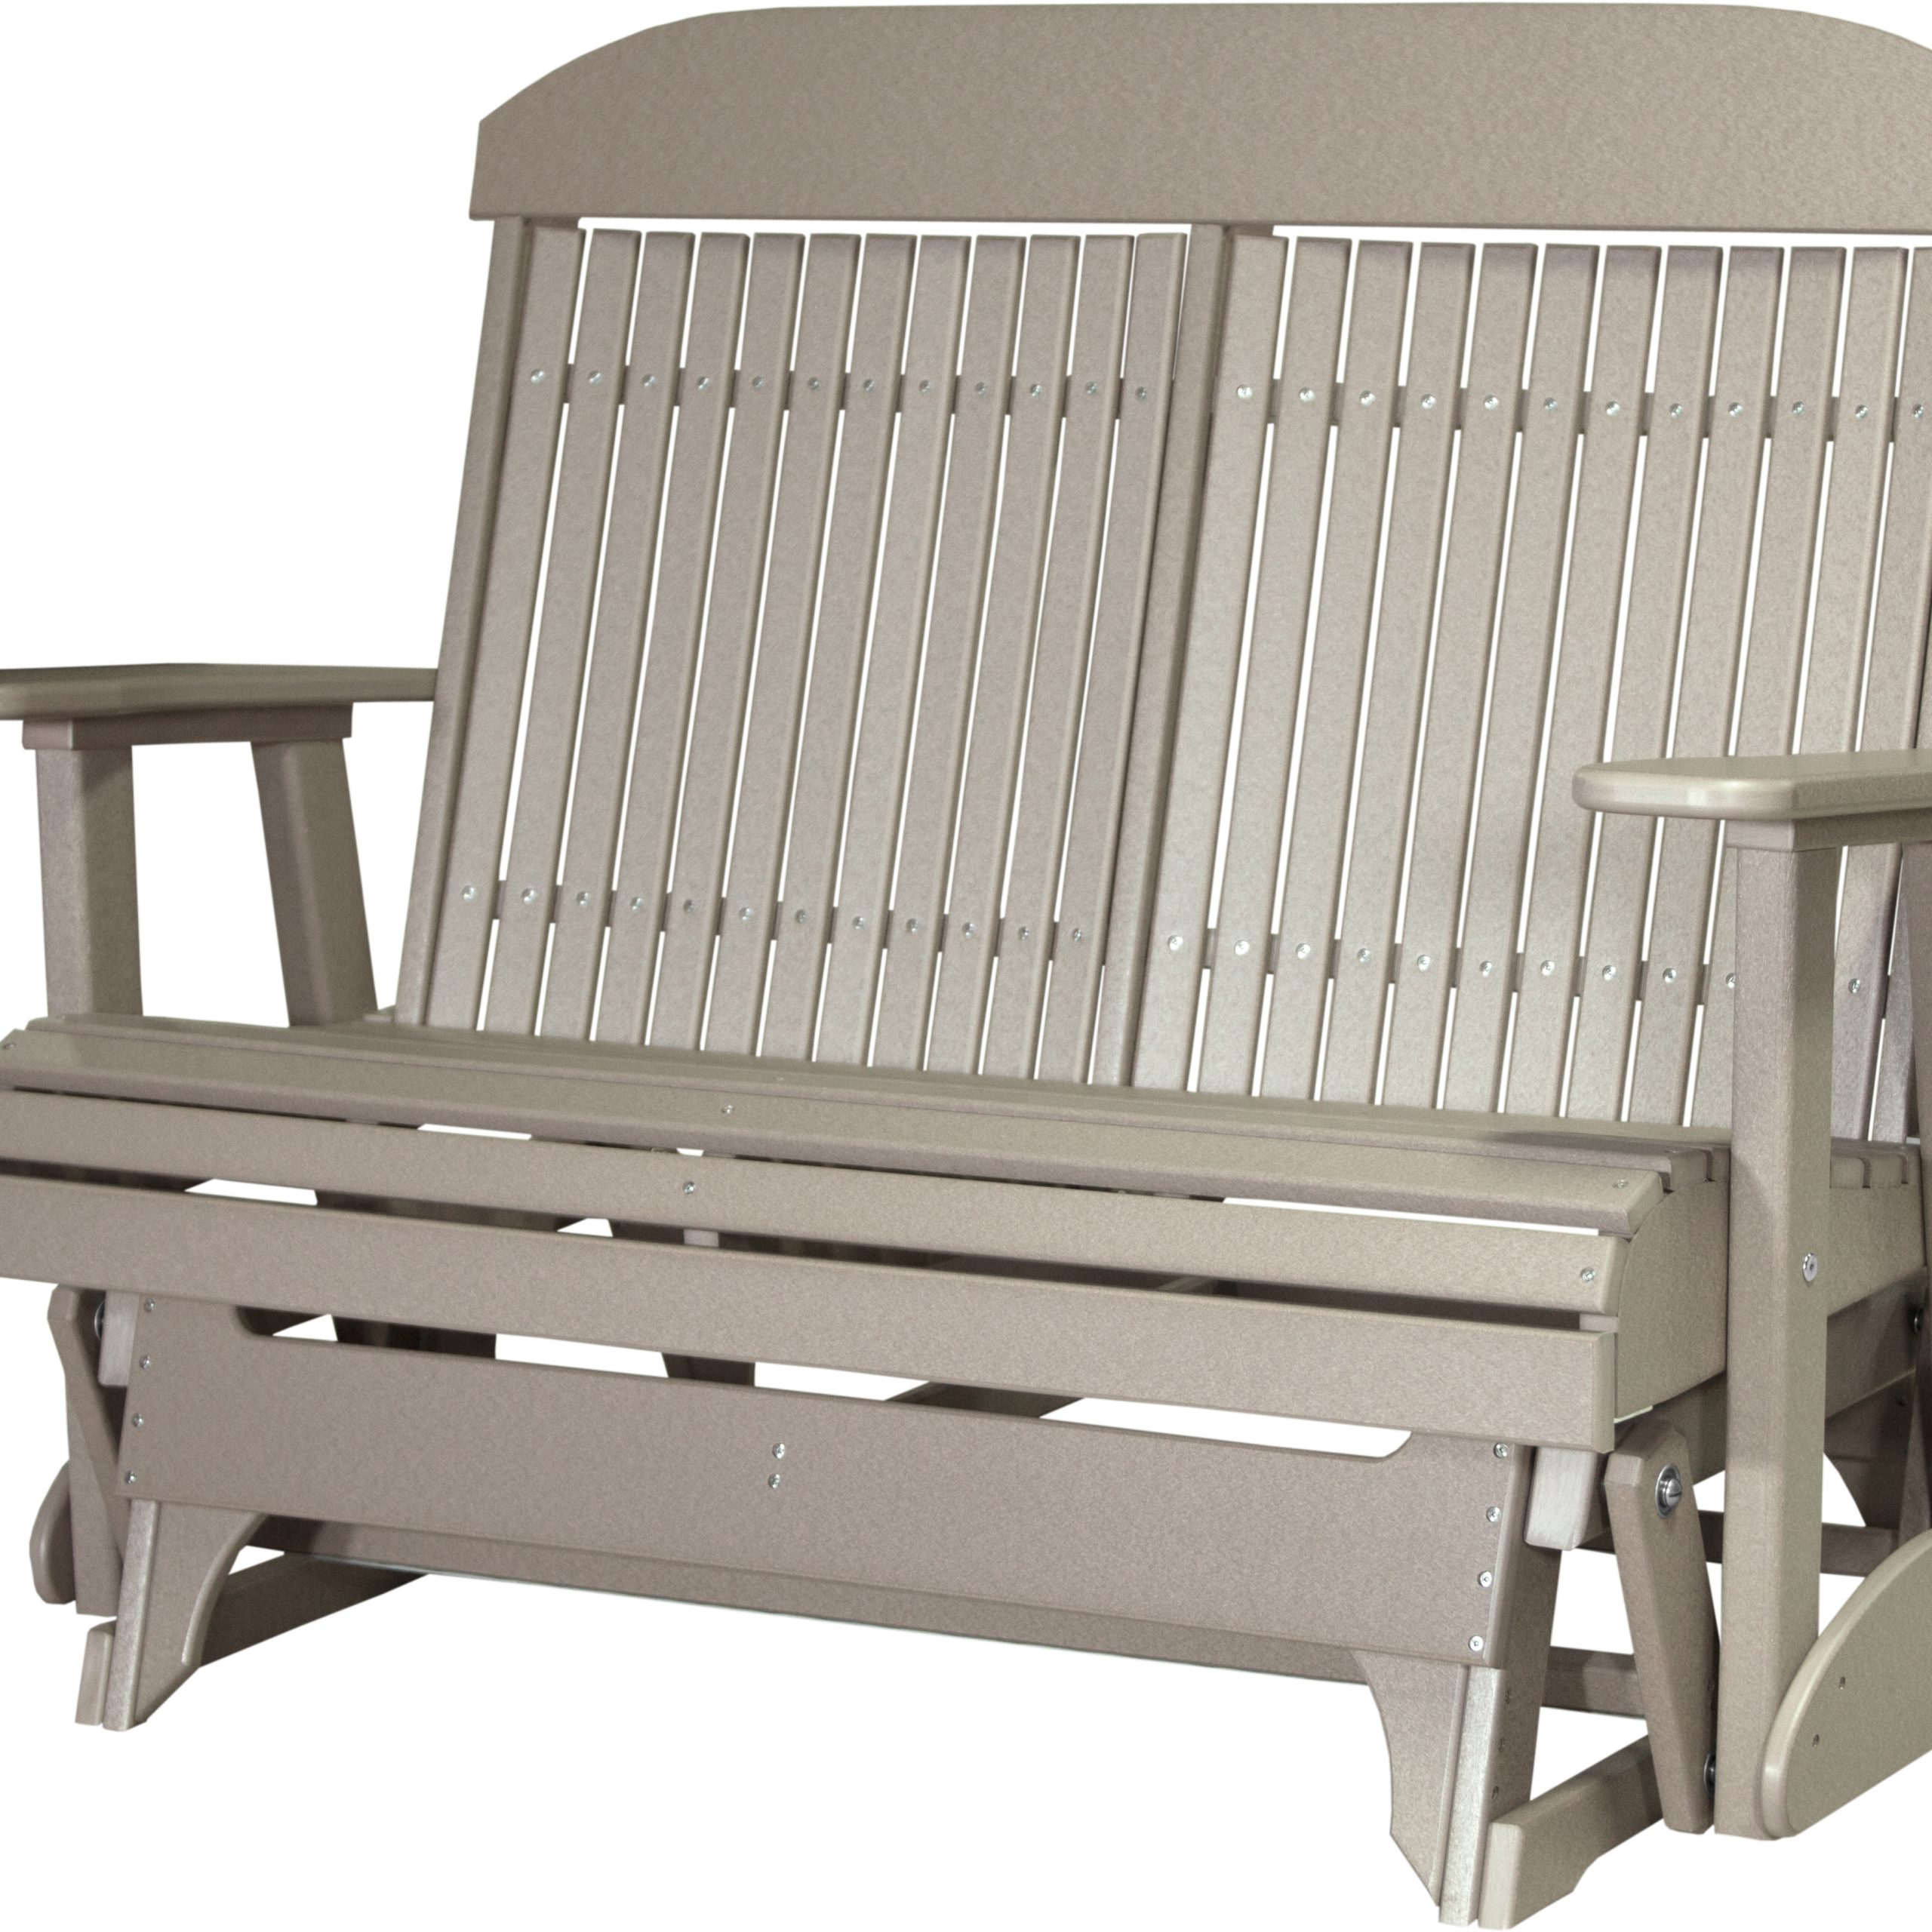 4' Classic Glider – Luxcraft – Luxury Amish Furniture And Regarding Most Popular Classic Glider Benches (View 6 of 30)